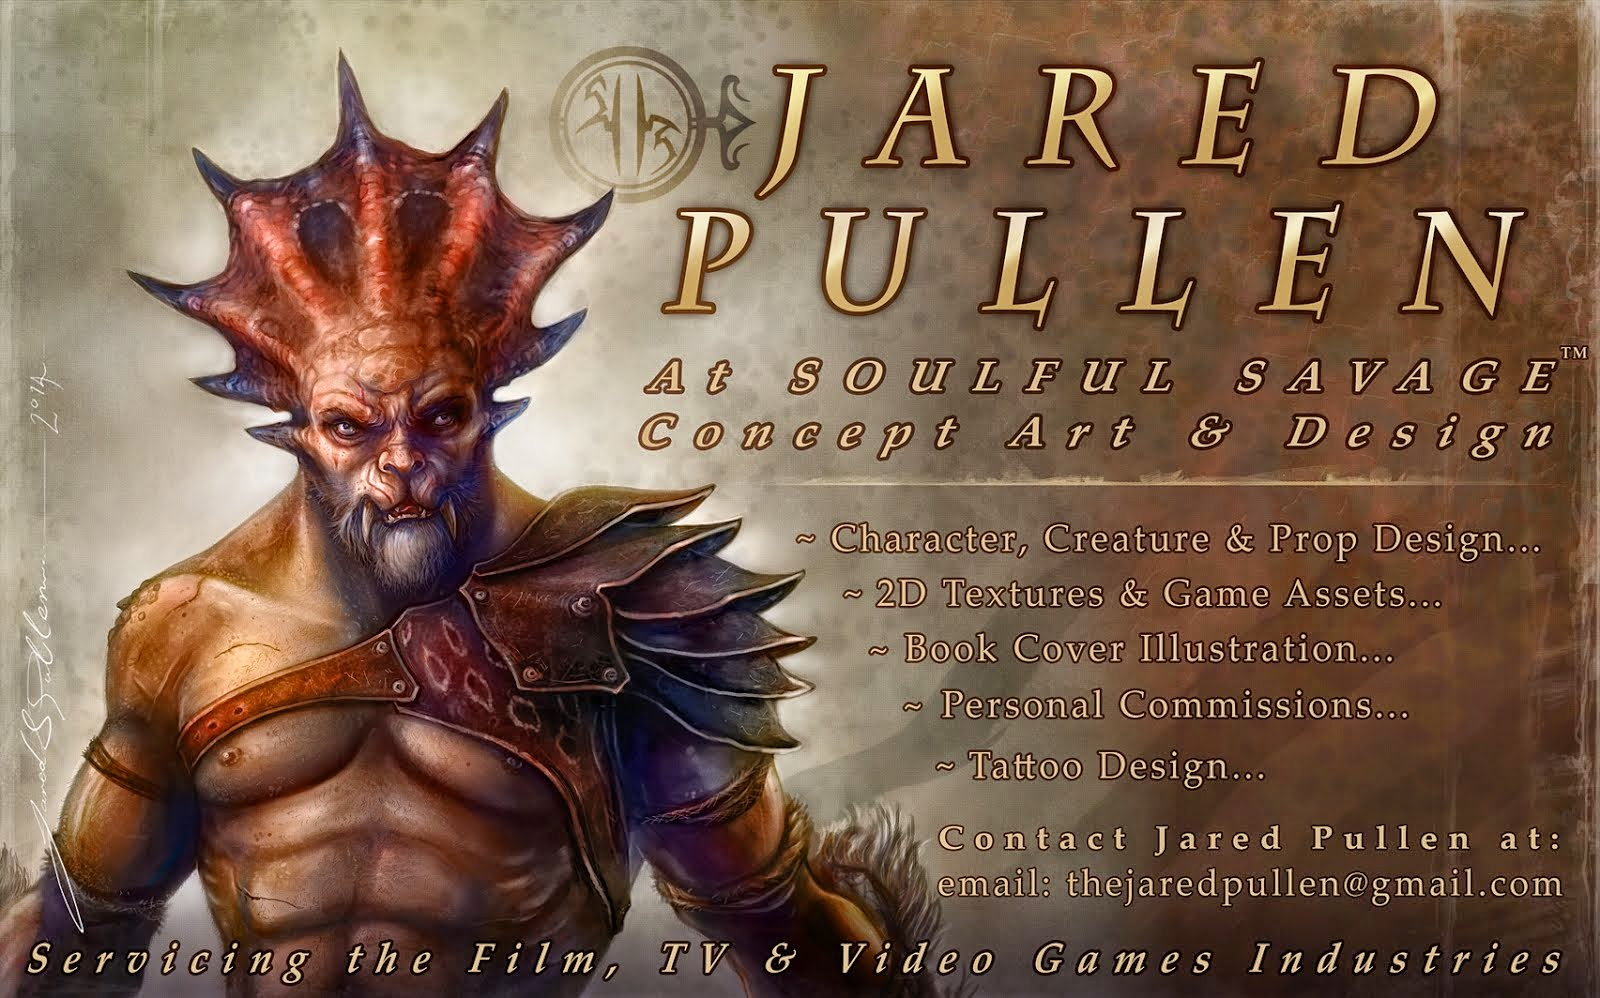 Jared Pullen Soulful Savage Concept Art & Design